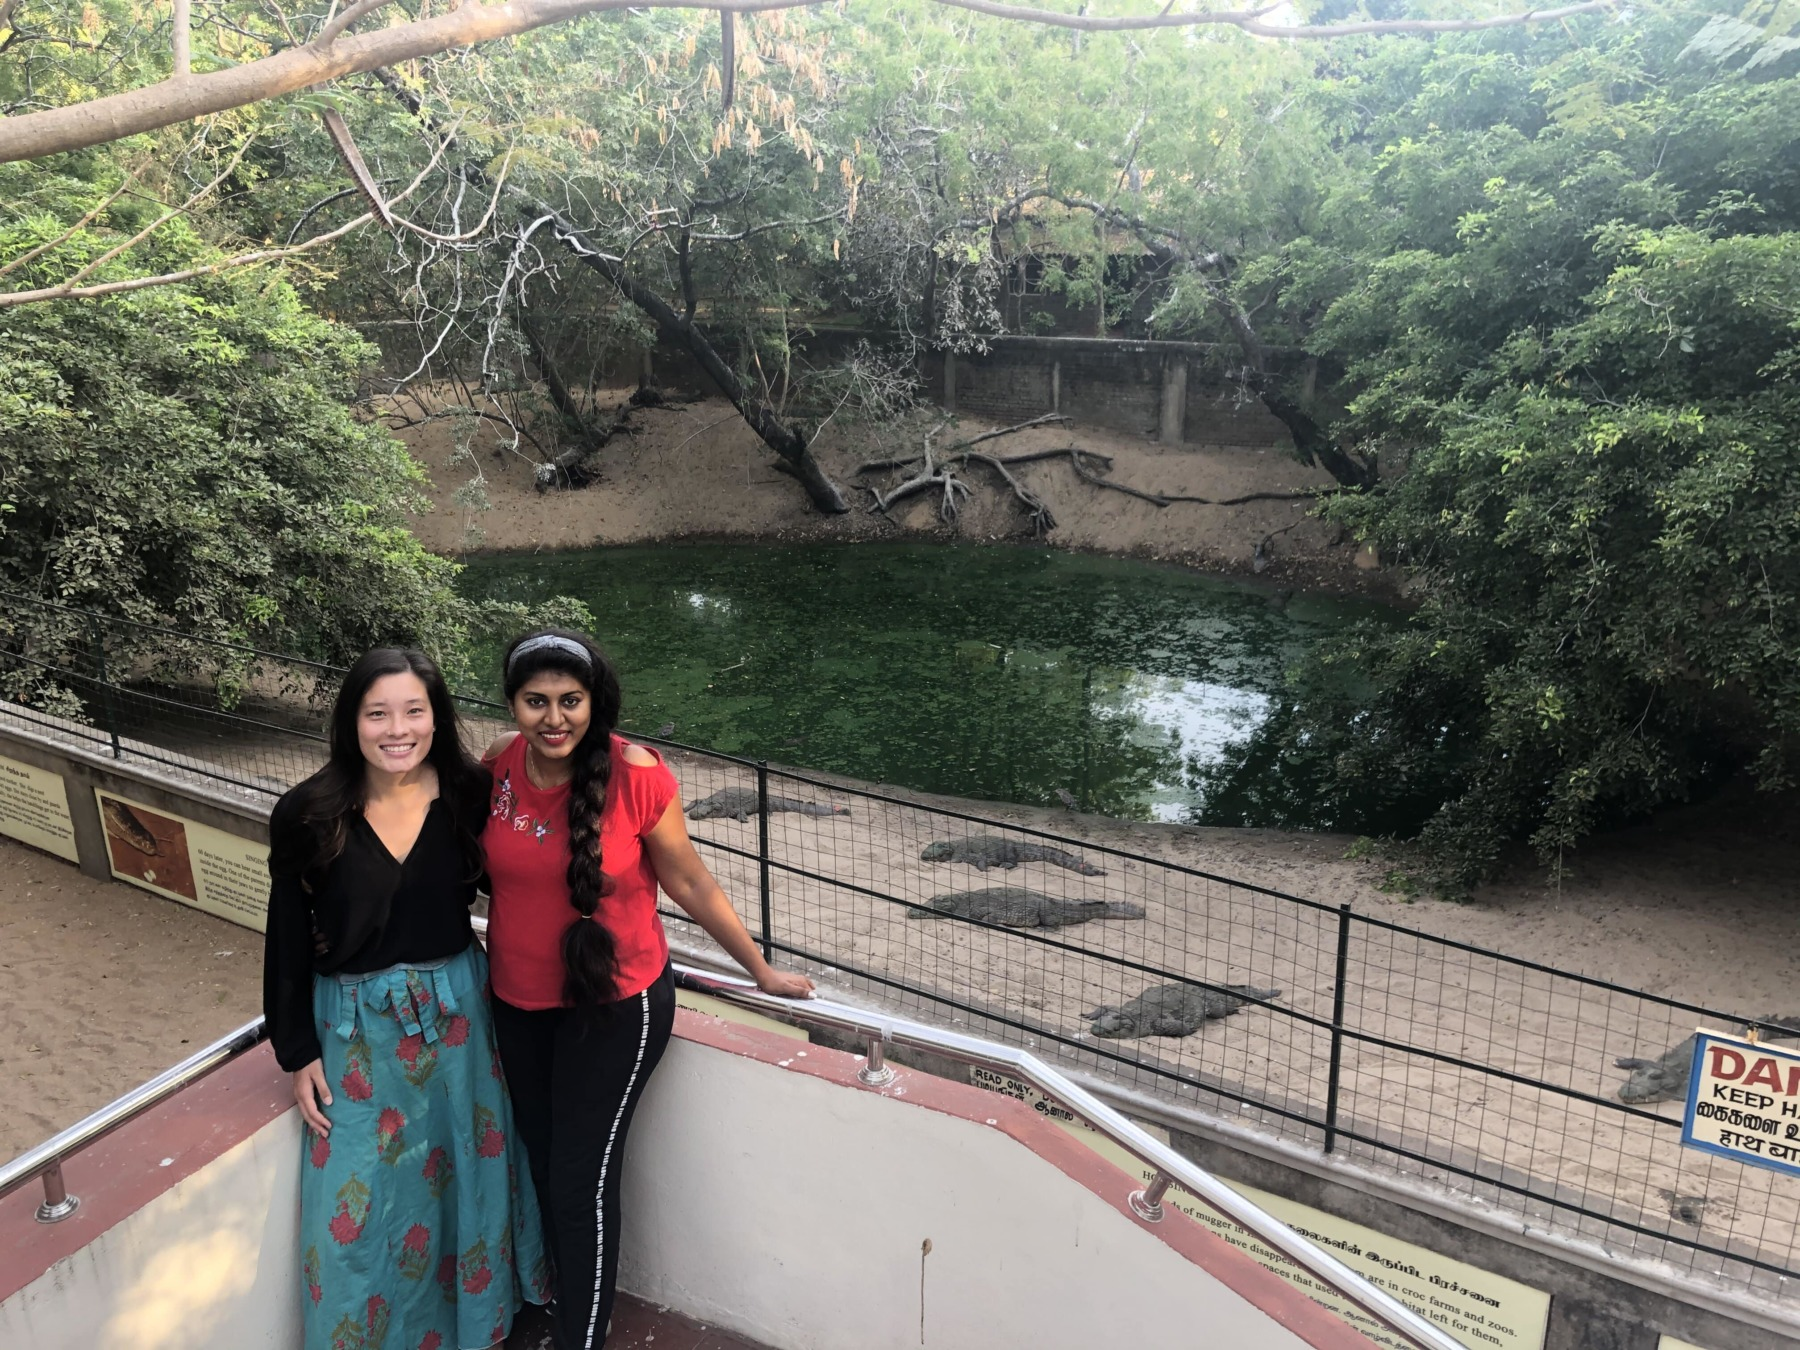 Two girls standing on a stairwell with a pond and crocodiles in the background